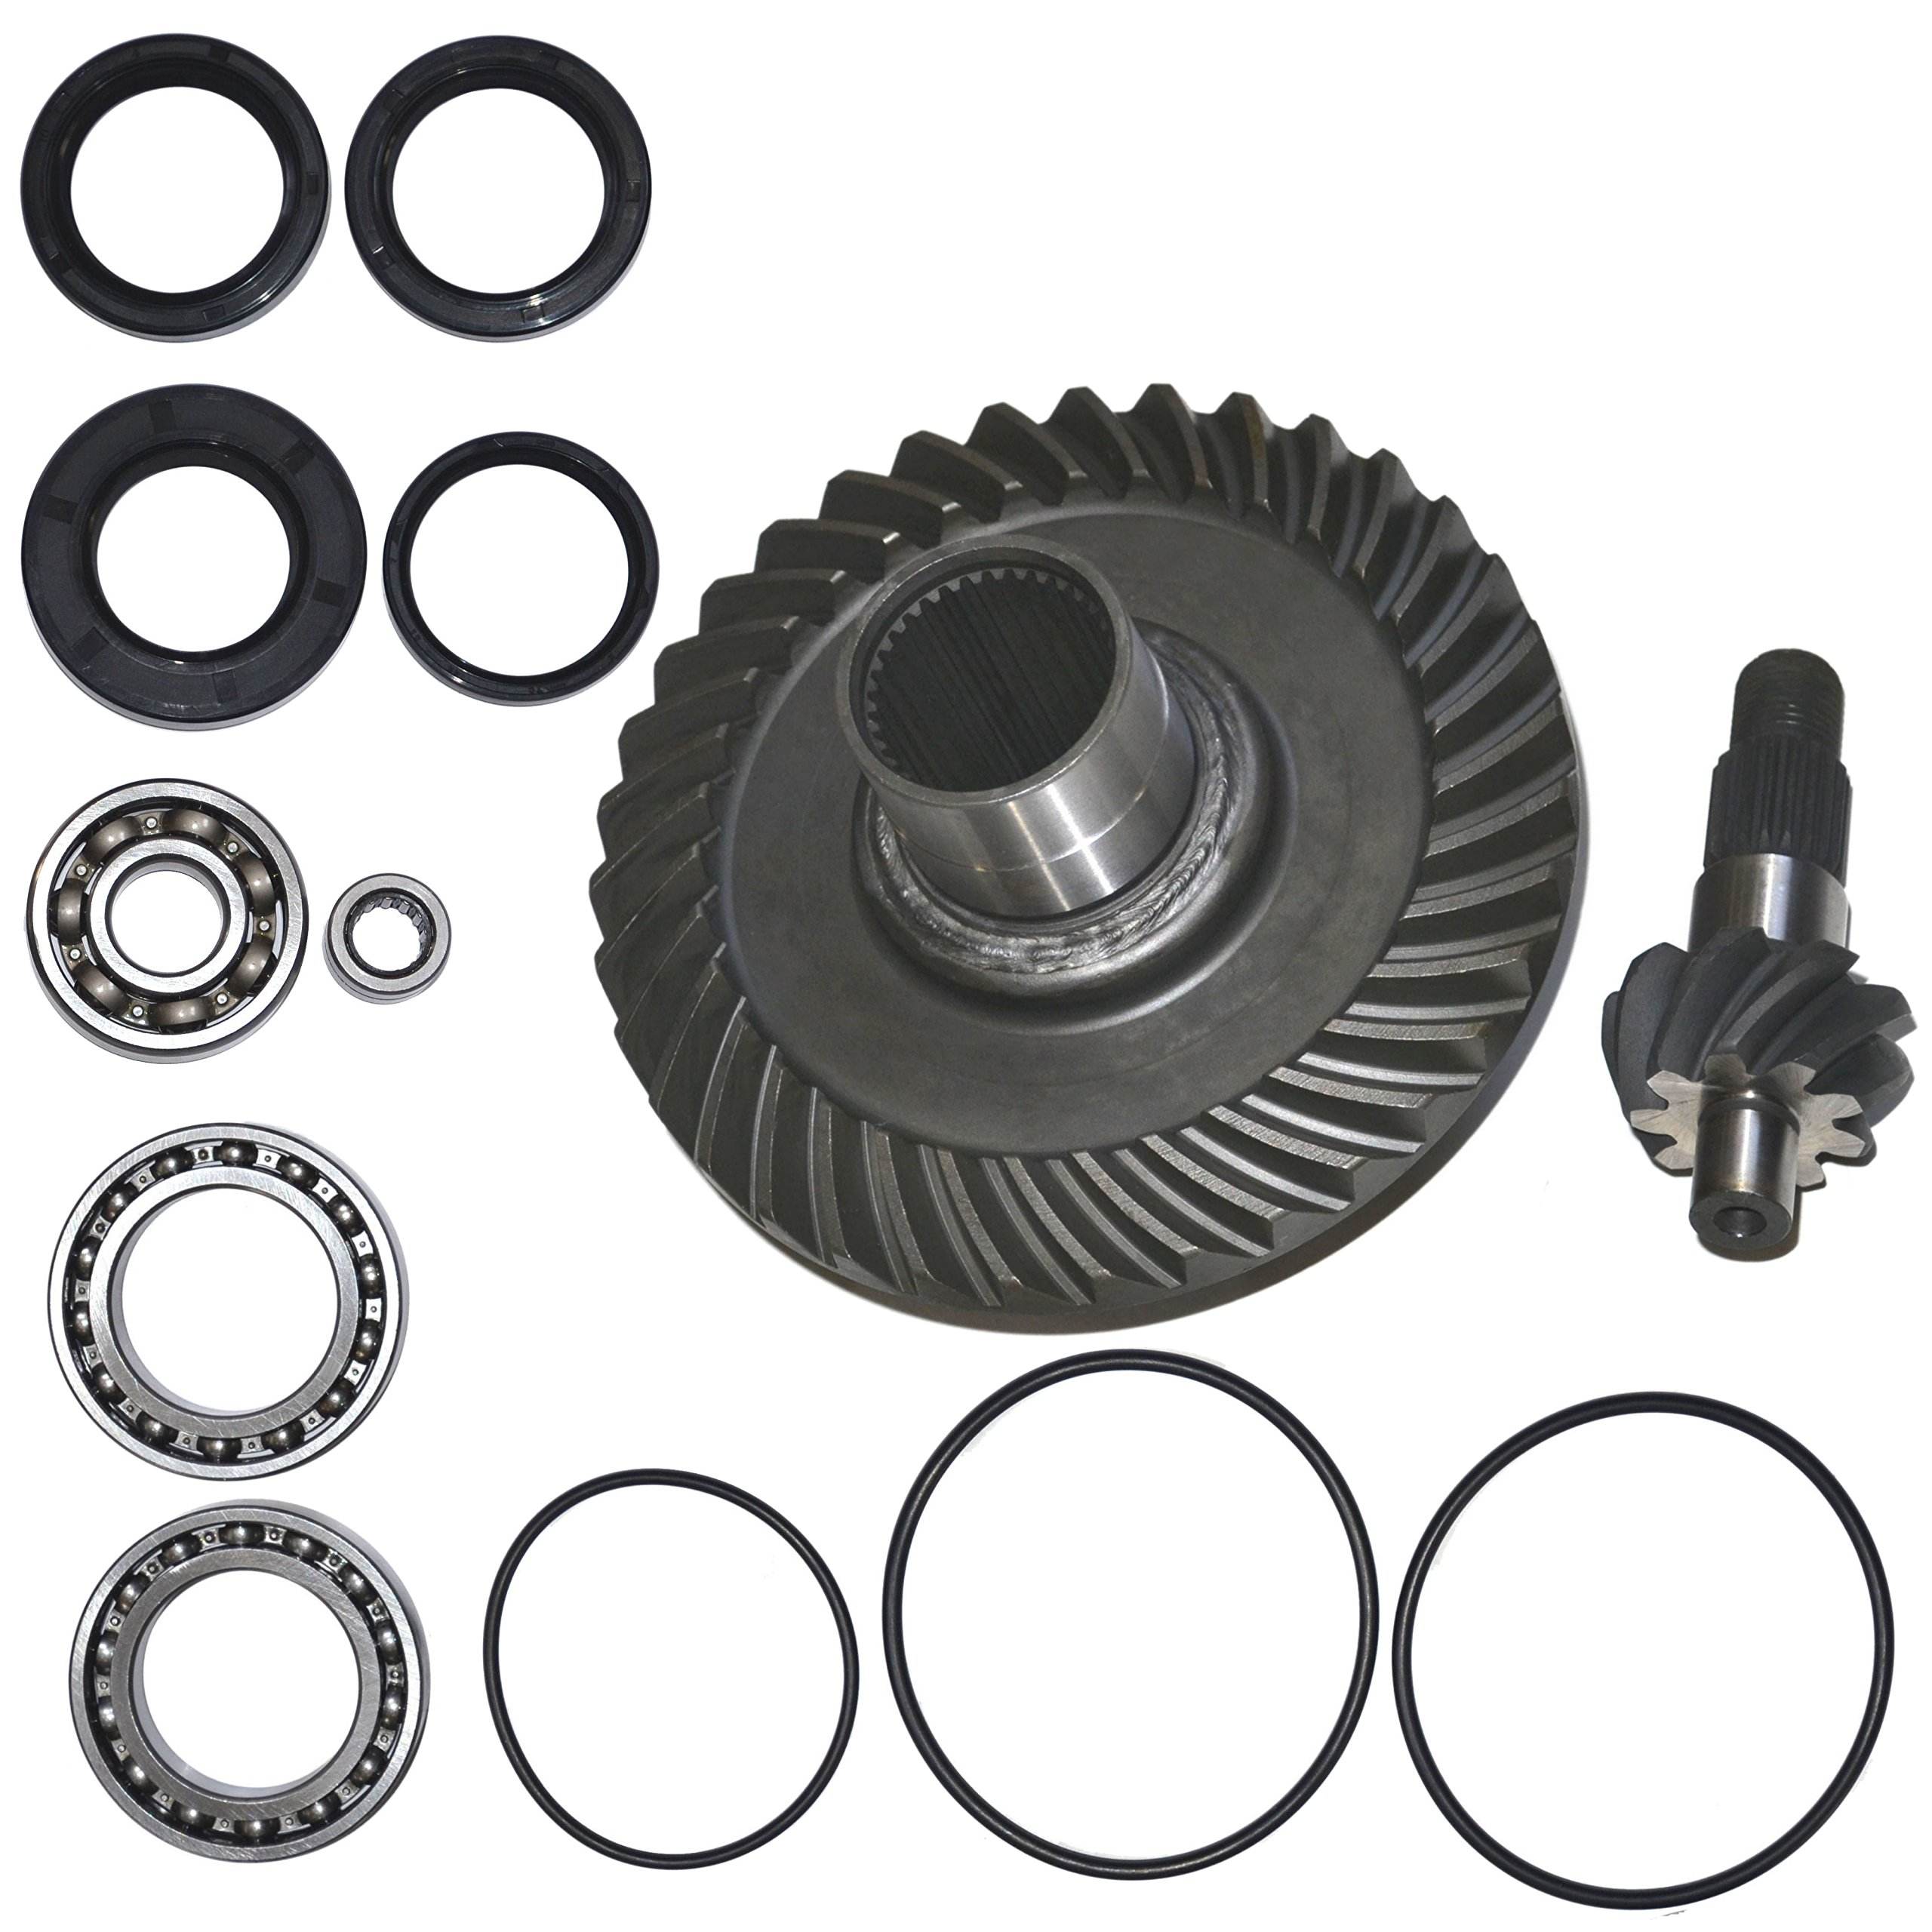 Fourtrax Rear Differential Ring and Pinion Gear & Bearing Fits 1988-2000 Honda TRX300 300